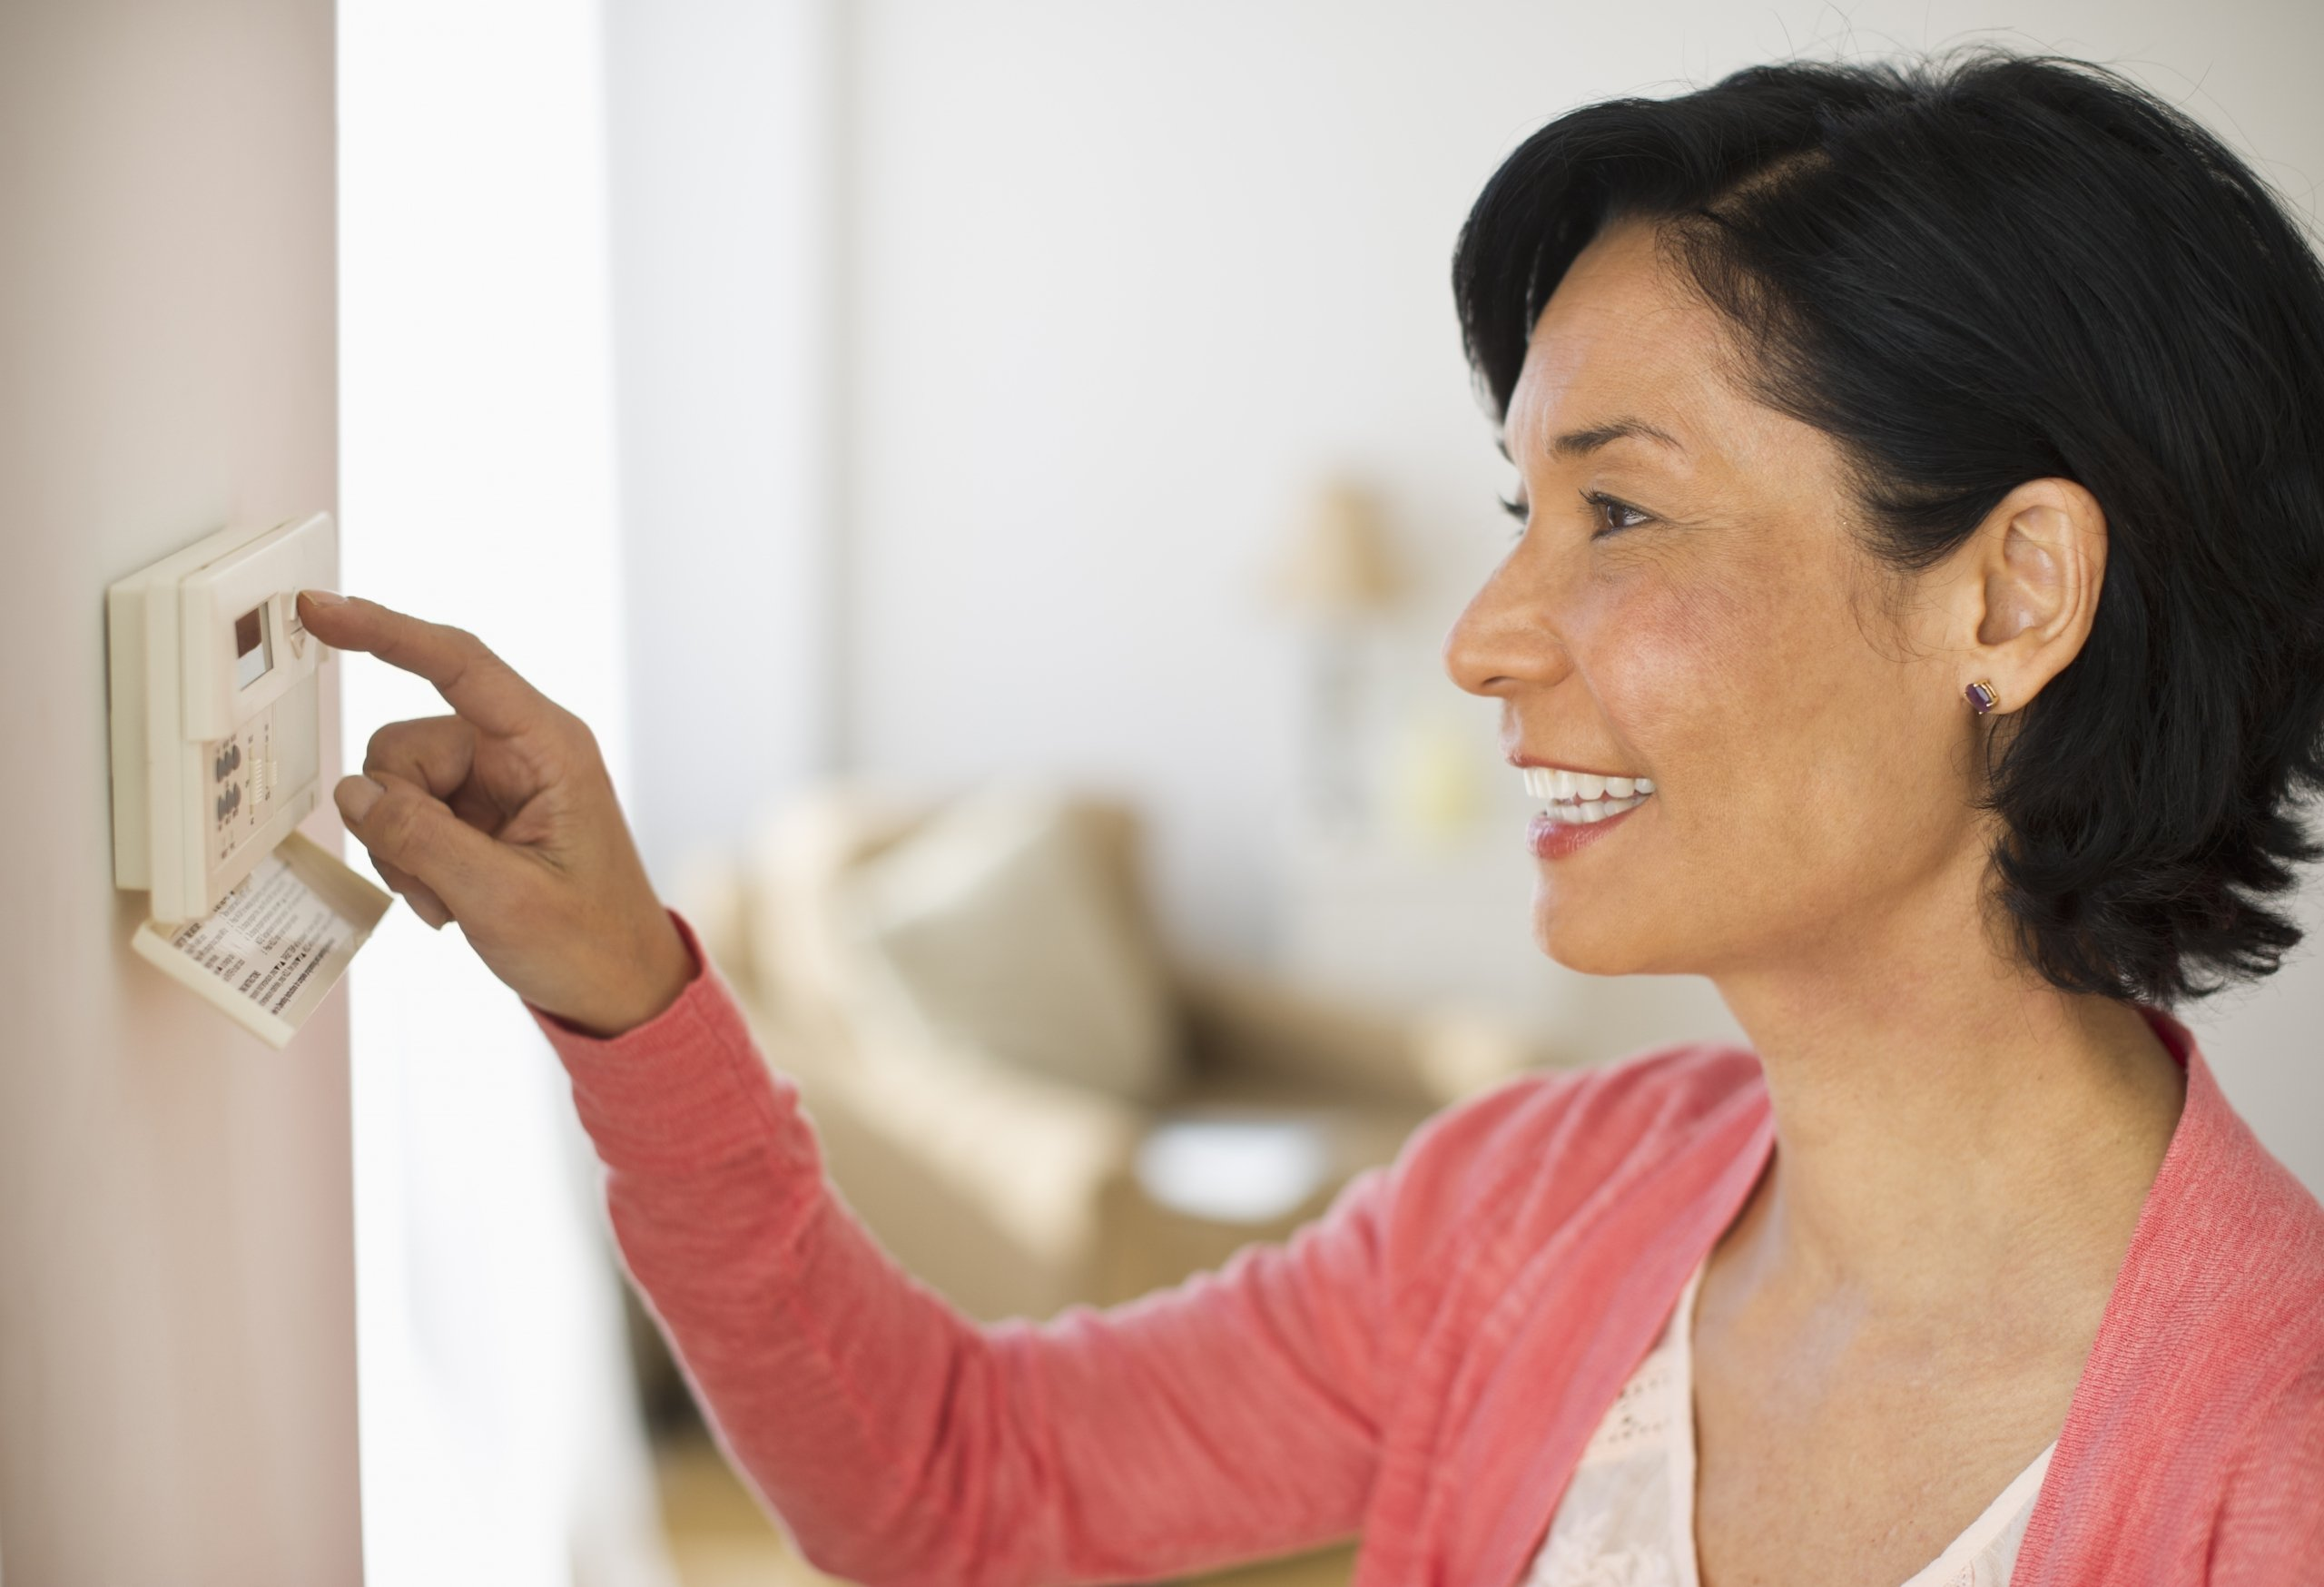 woman checking the thermostat in her home